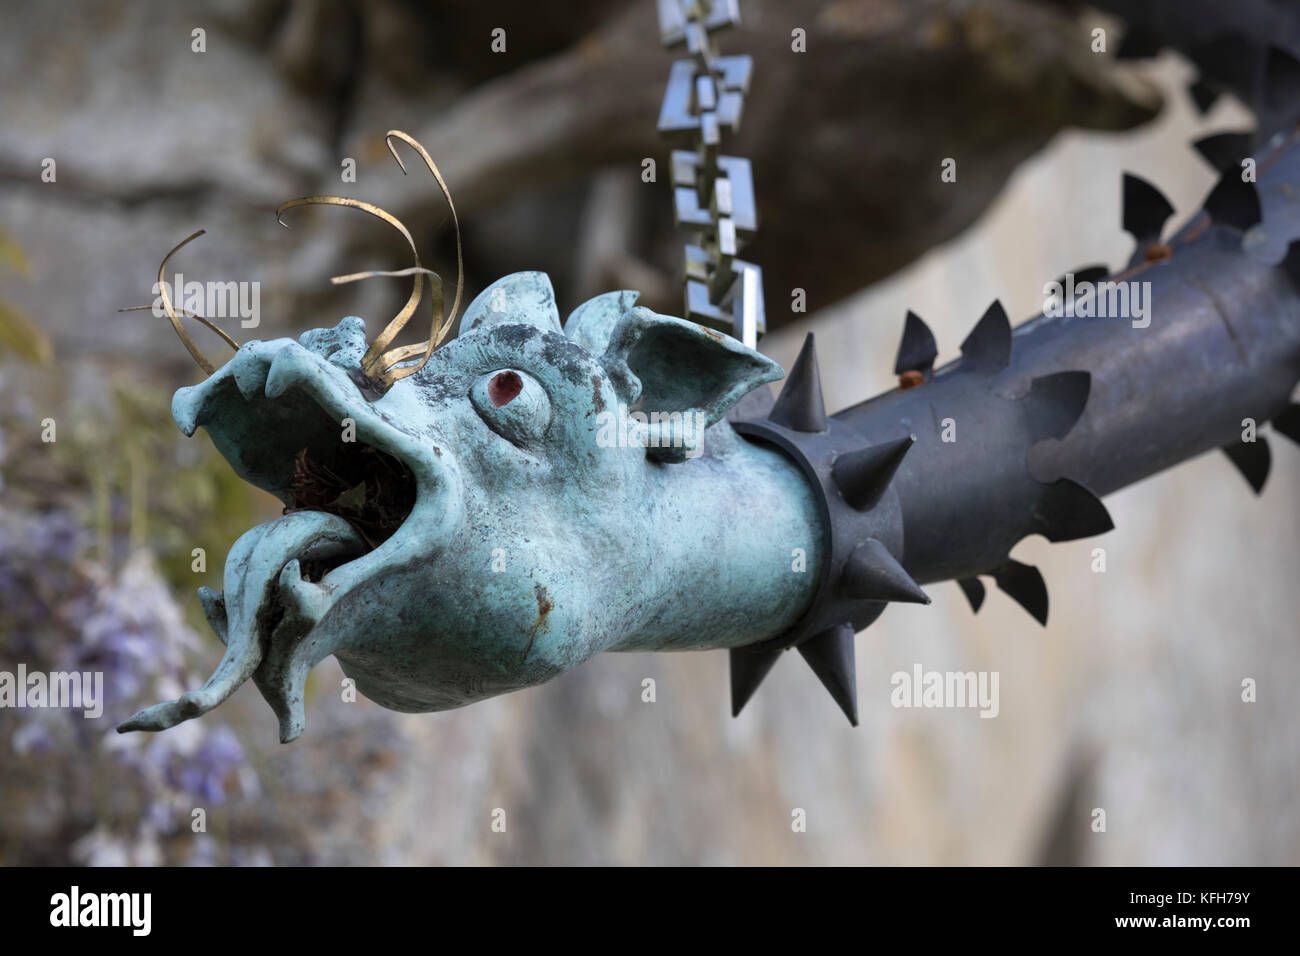 Dragon faced drain pipe on exterior of St Nicholas's church, Hatherop, Cotswolds, Gloucestershire, England, - Stock Image